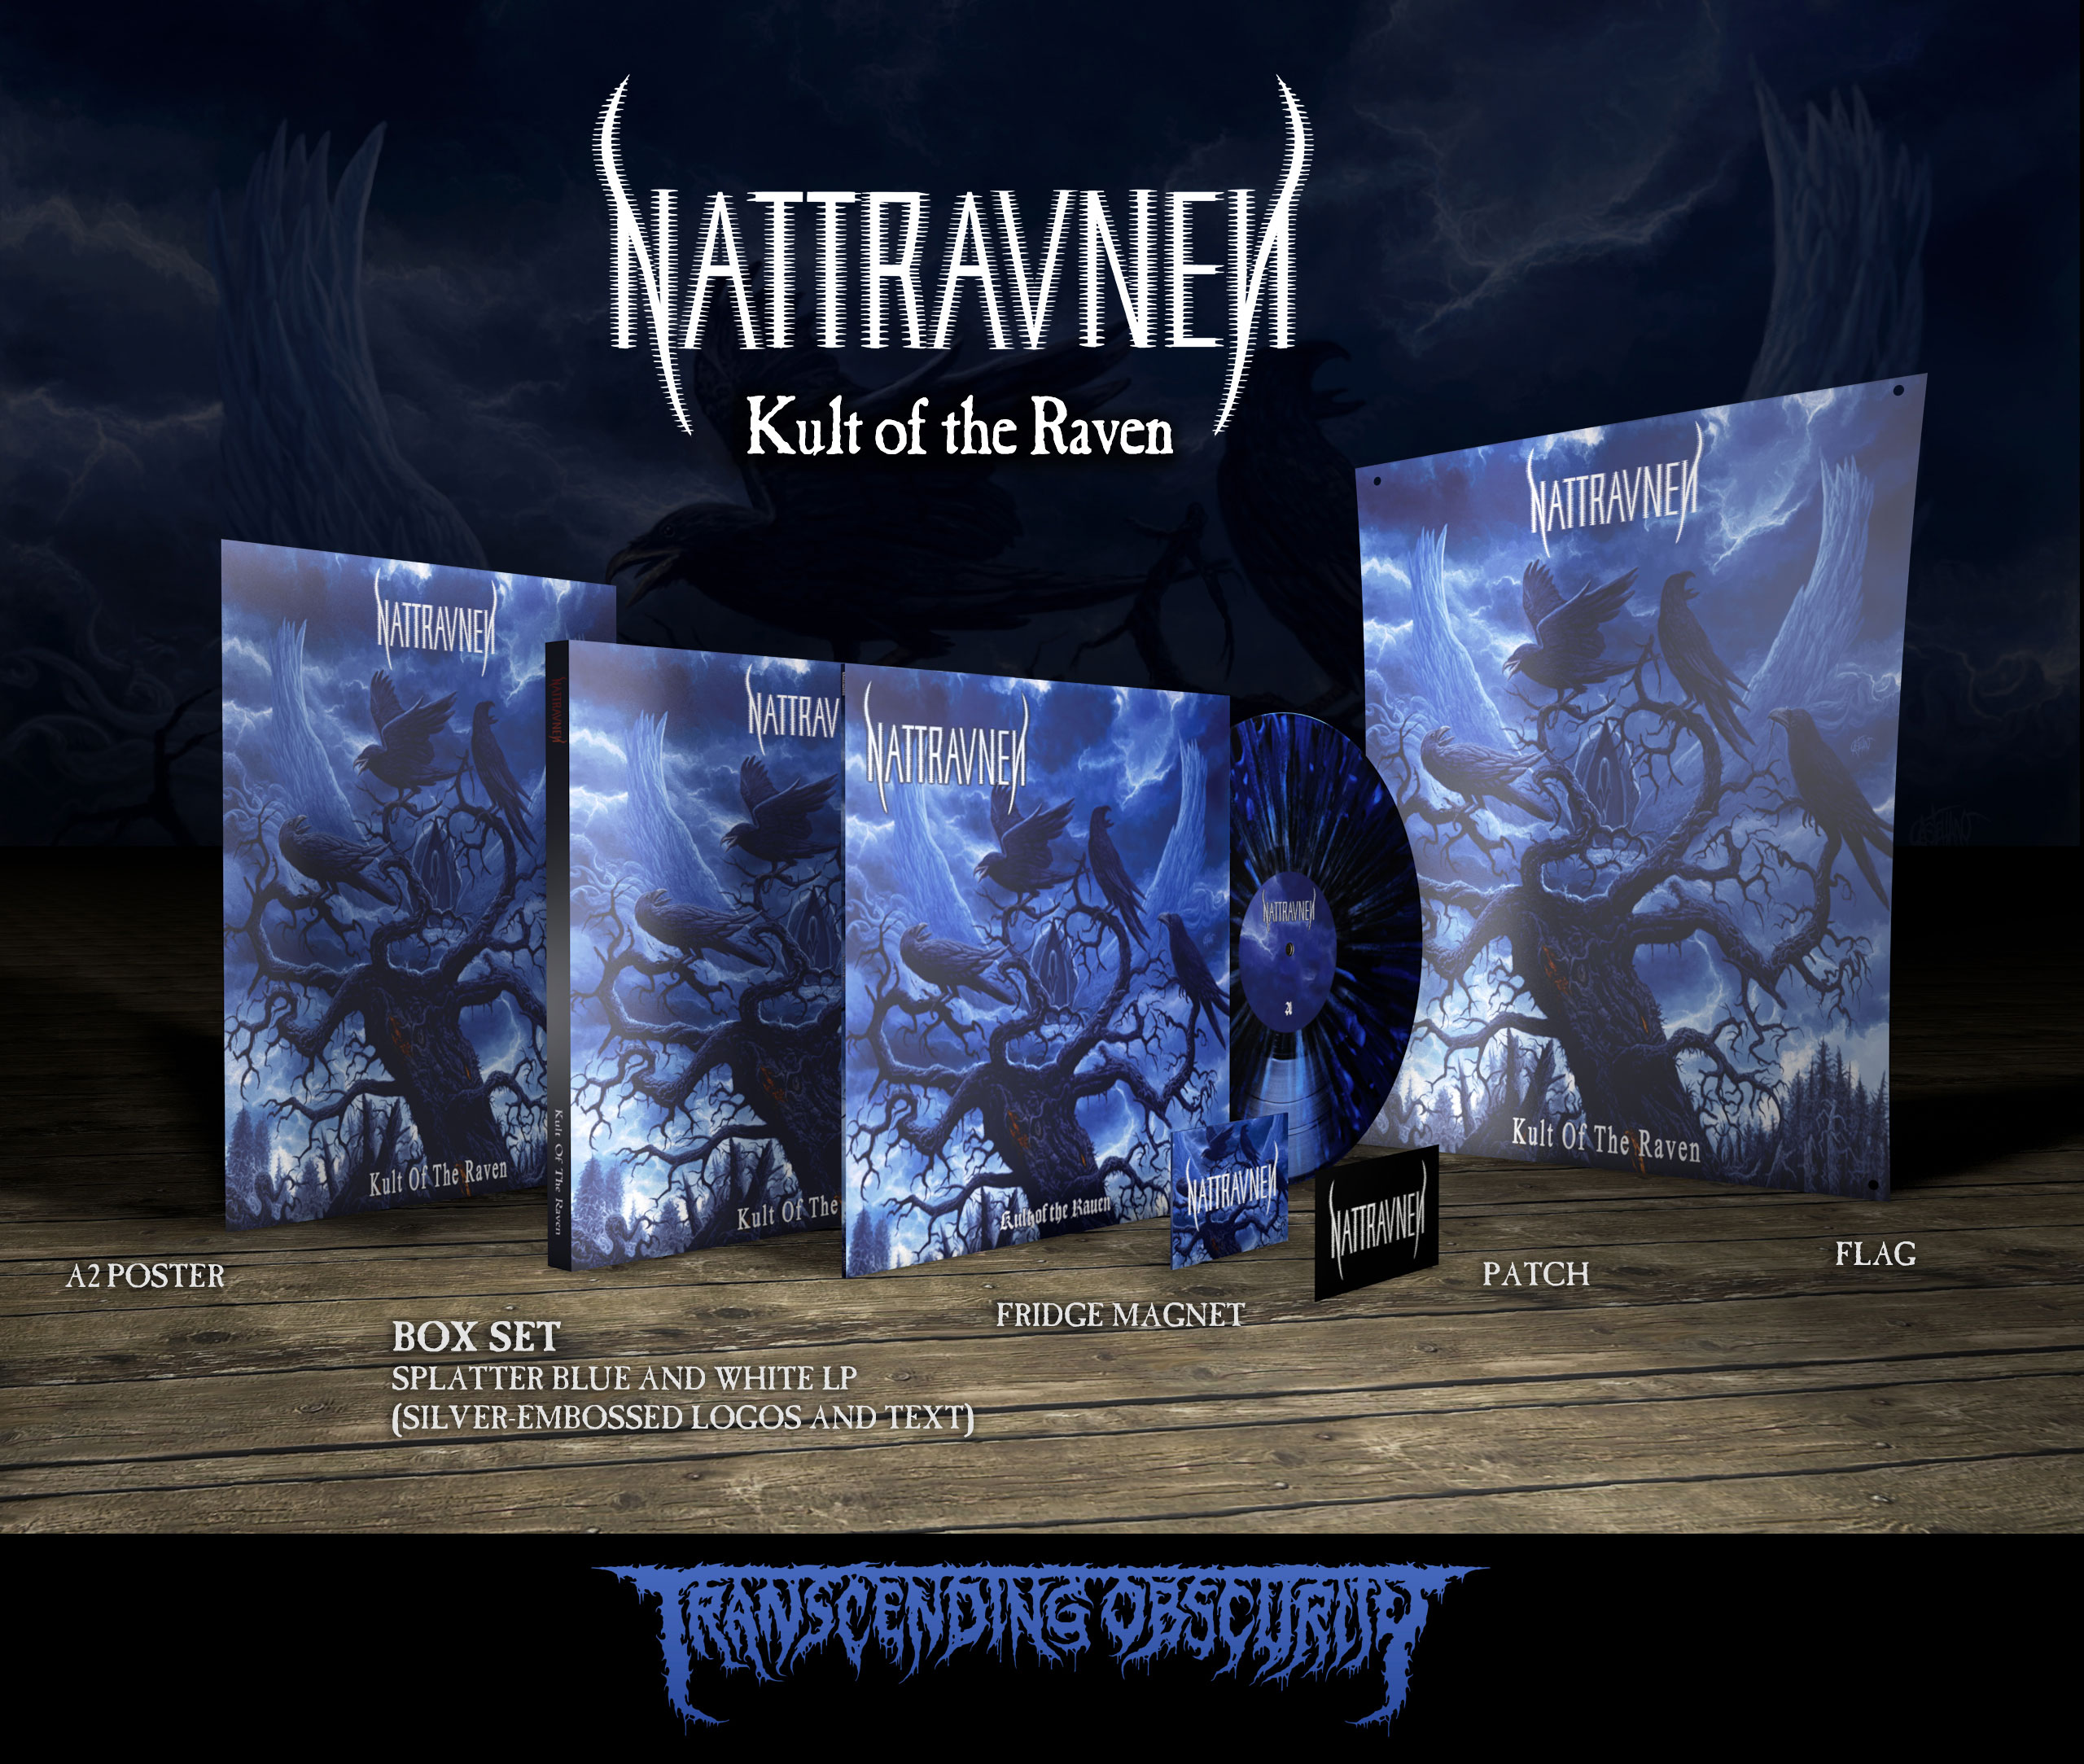 NATTRAVNEN (US/UK) - 'Kult of the Raven' LP Box Set (Limited to 35)